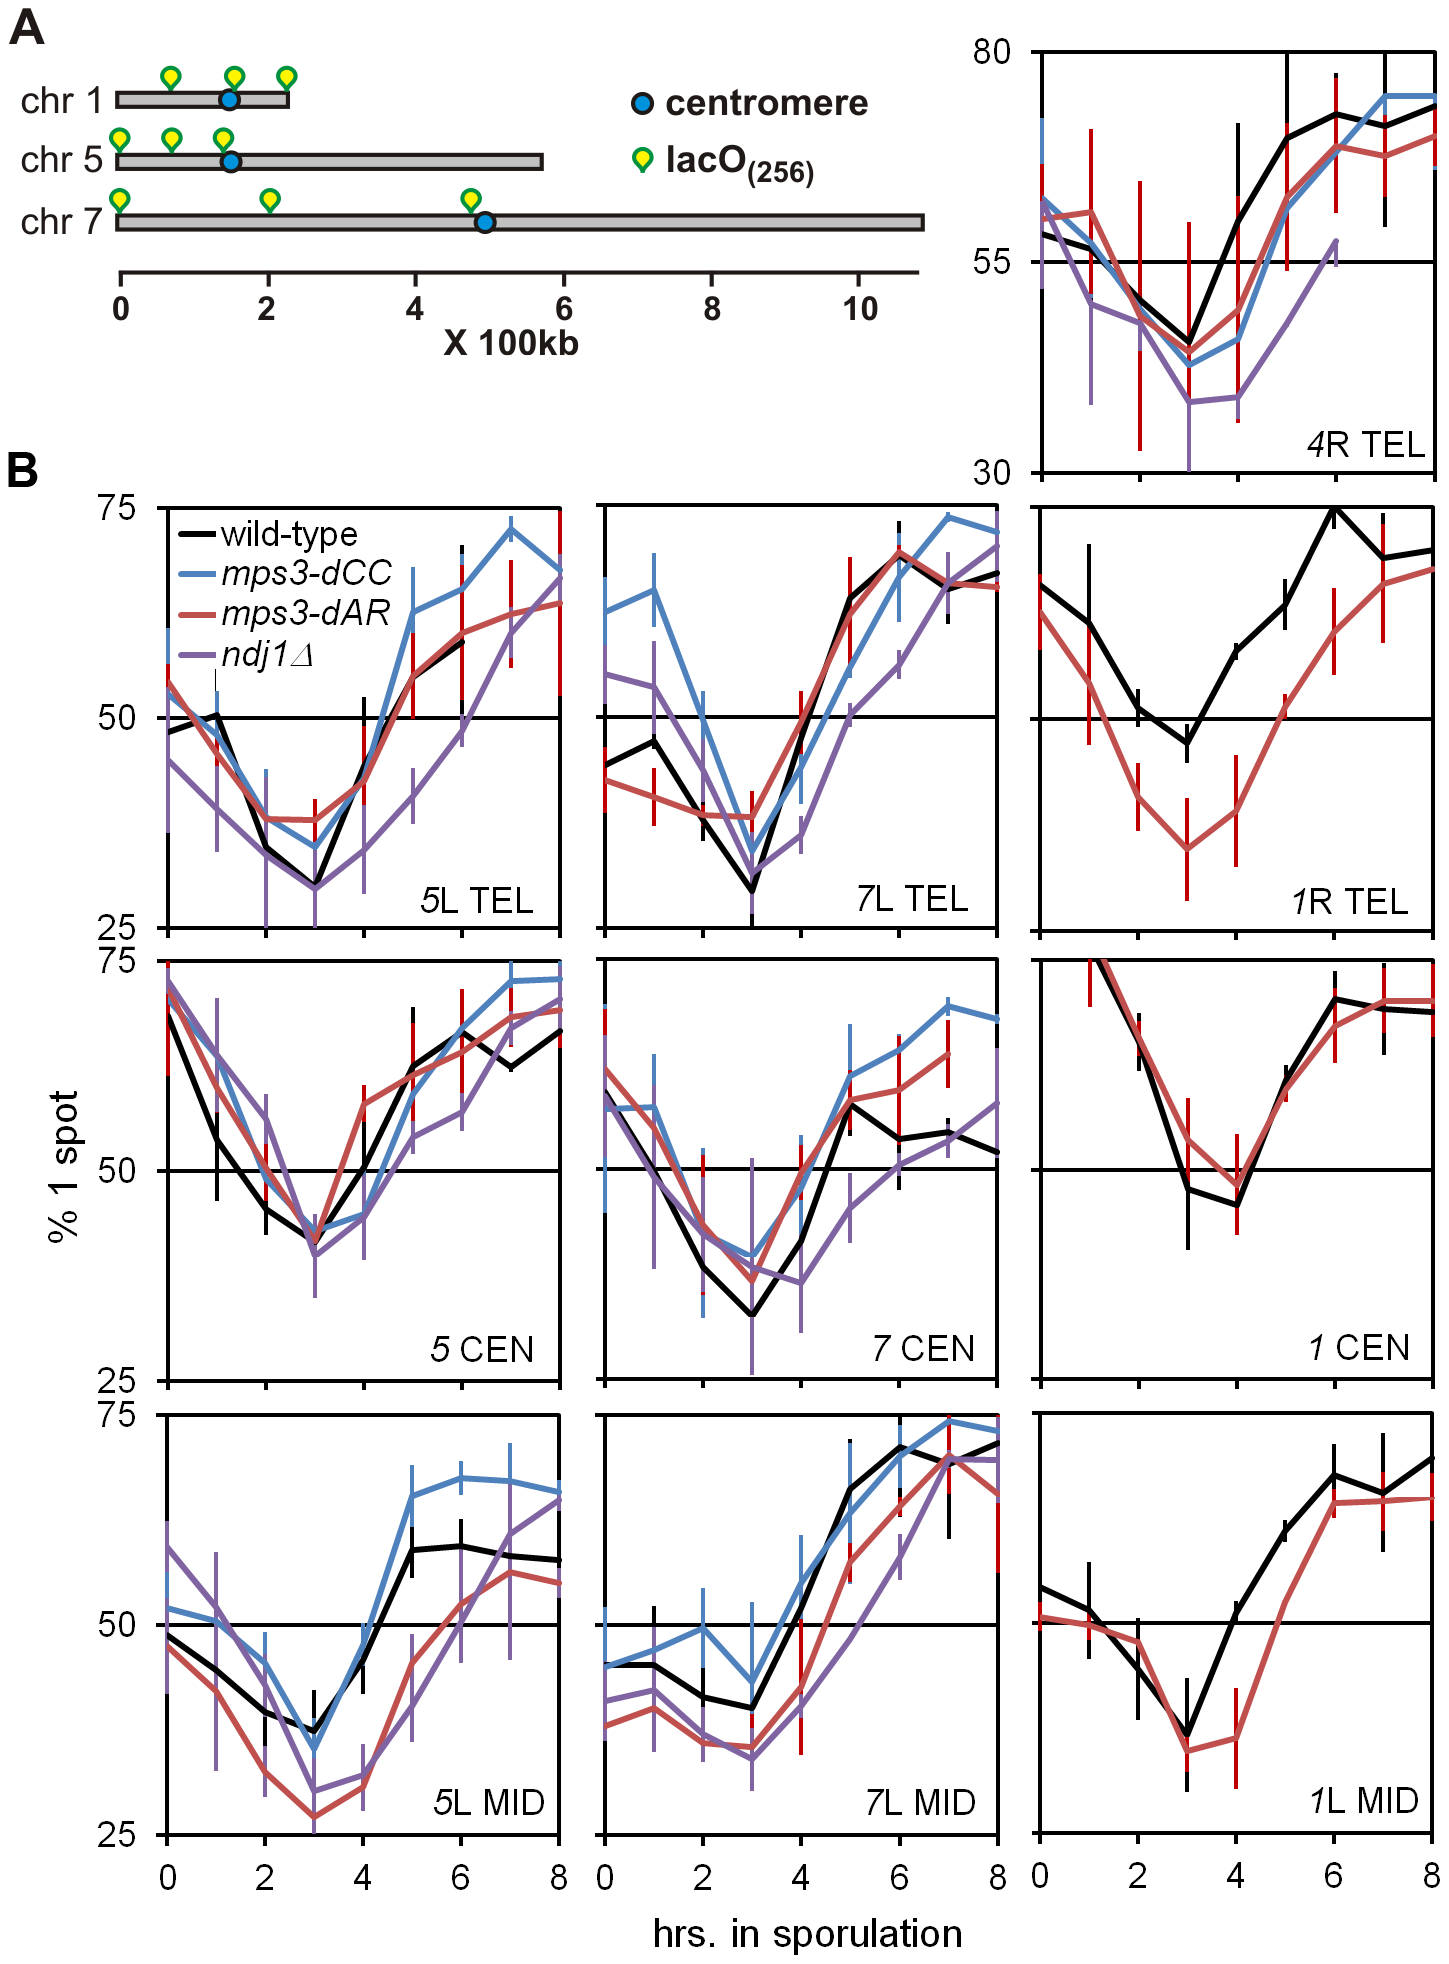 Delays of pairing/synapsis in RPM mutants vary among chromosome loci.